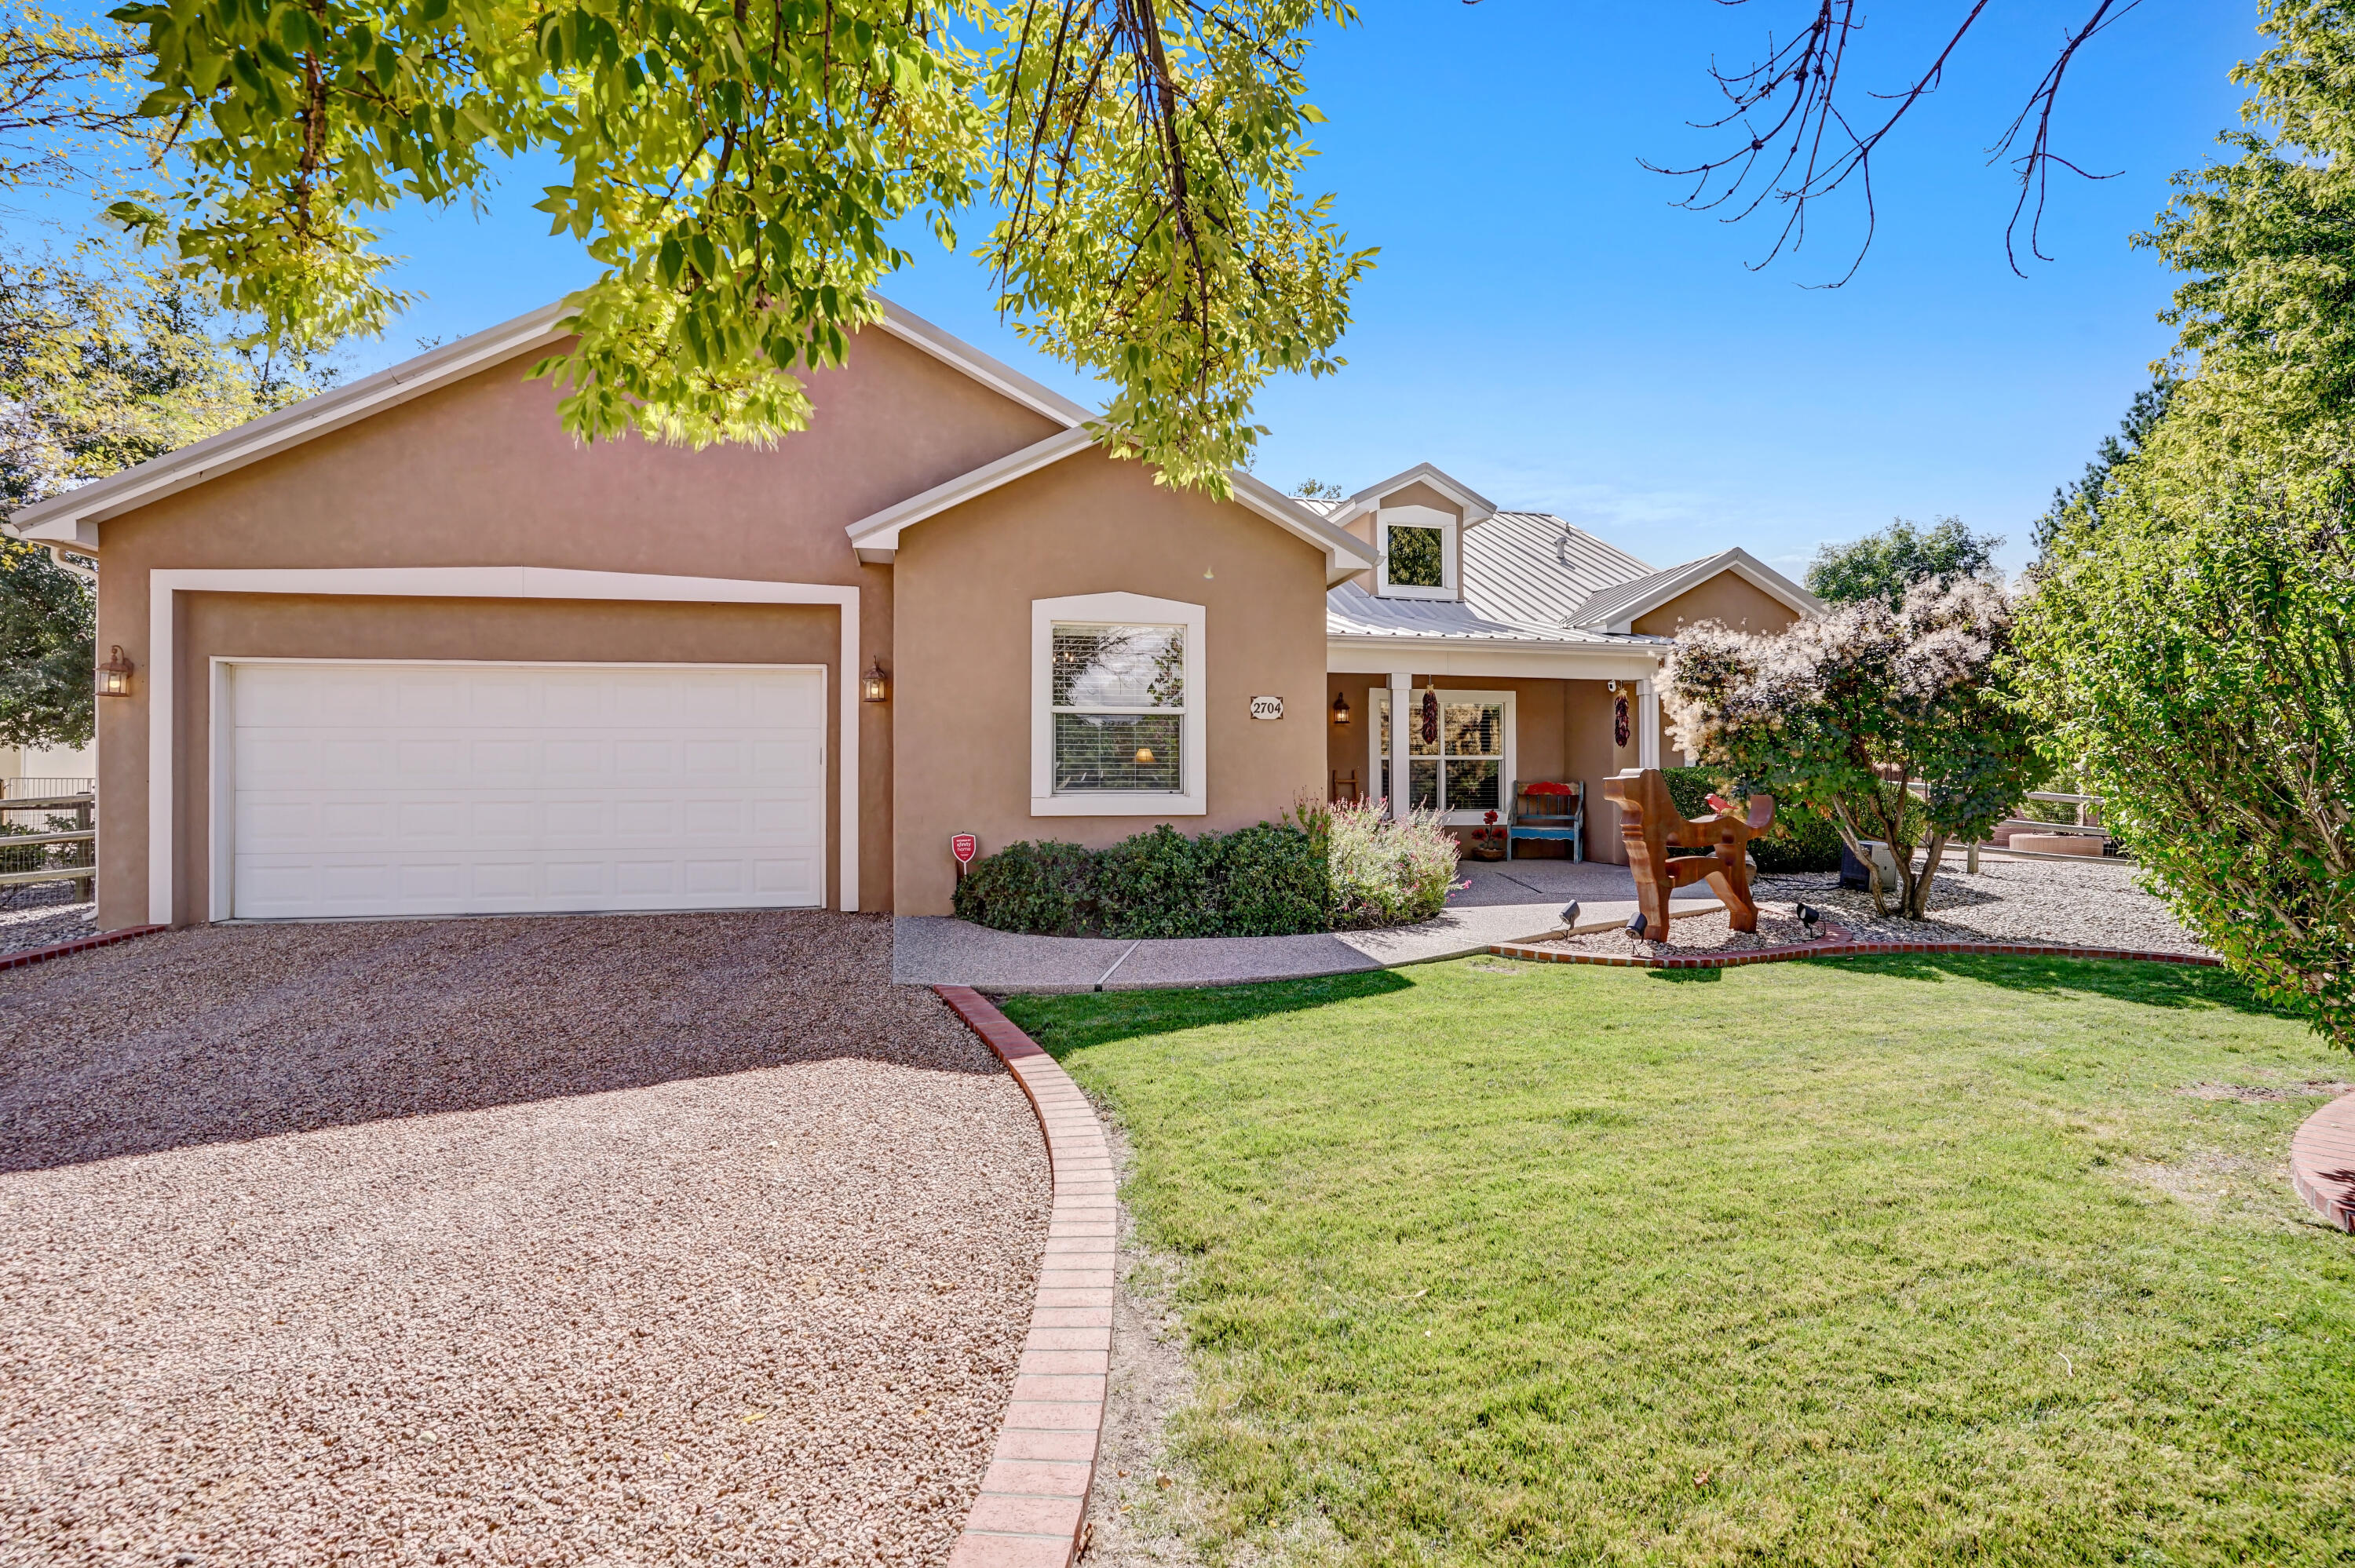 ABSOLUTELY BREATHTAKING home with classic Northern New Mexico style tucked into a quiet cul-de-sac of this private and peaceful neighborhood with Bosque trail access. Immaculately maintained inside and out, you will fall in love with this West River Valley beauty! Cathedral ceilings, skylights, and warm hues make this space light and bright with a chic southwestern charm. The chef-ready gourmet kitchen is highlighted by granite countertops, backsplash, double ovens, walk-in pantry, and a choice breakfast bar.  Cozy up to the Anasazi accented Kiva fireplace on cool evenings or relax with a book or Netflix binge in the laid-back second living area!  Framed by a gorgeous yard with gentle grass, shady trees, tranquil water feature, kiva, and serene patio complete this Enchanting home.